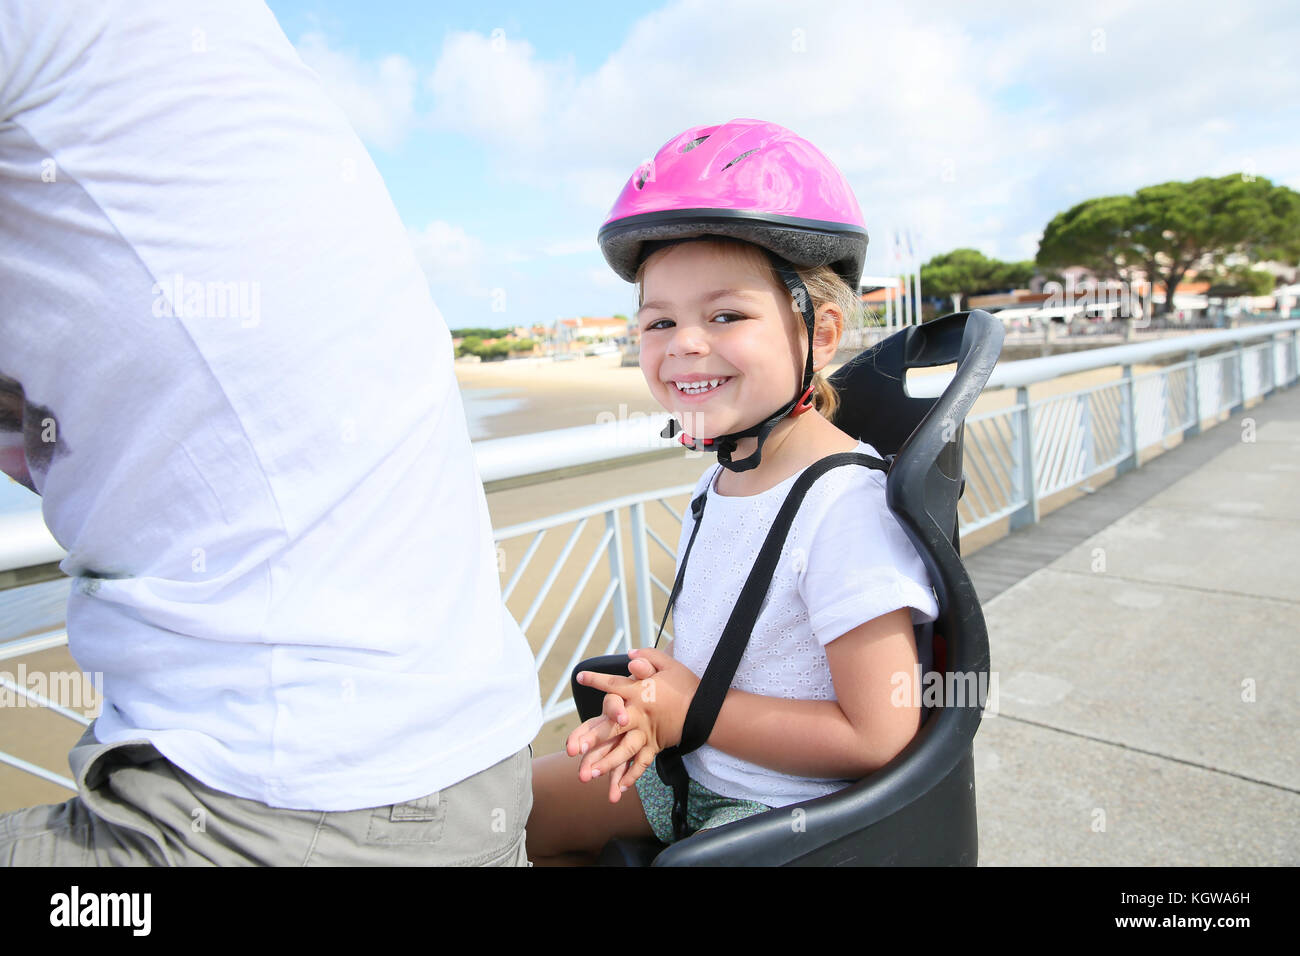 Smiling little girl sitting in child seat on bicycle - Stock Image